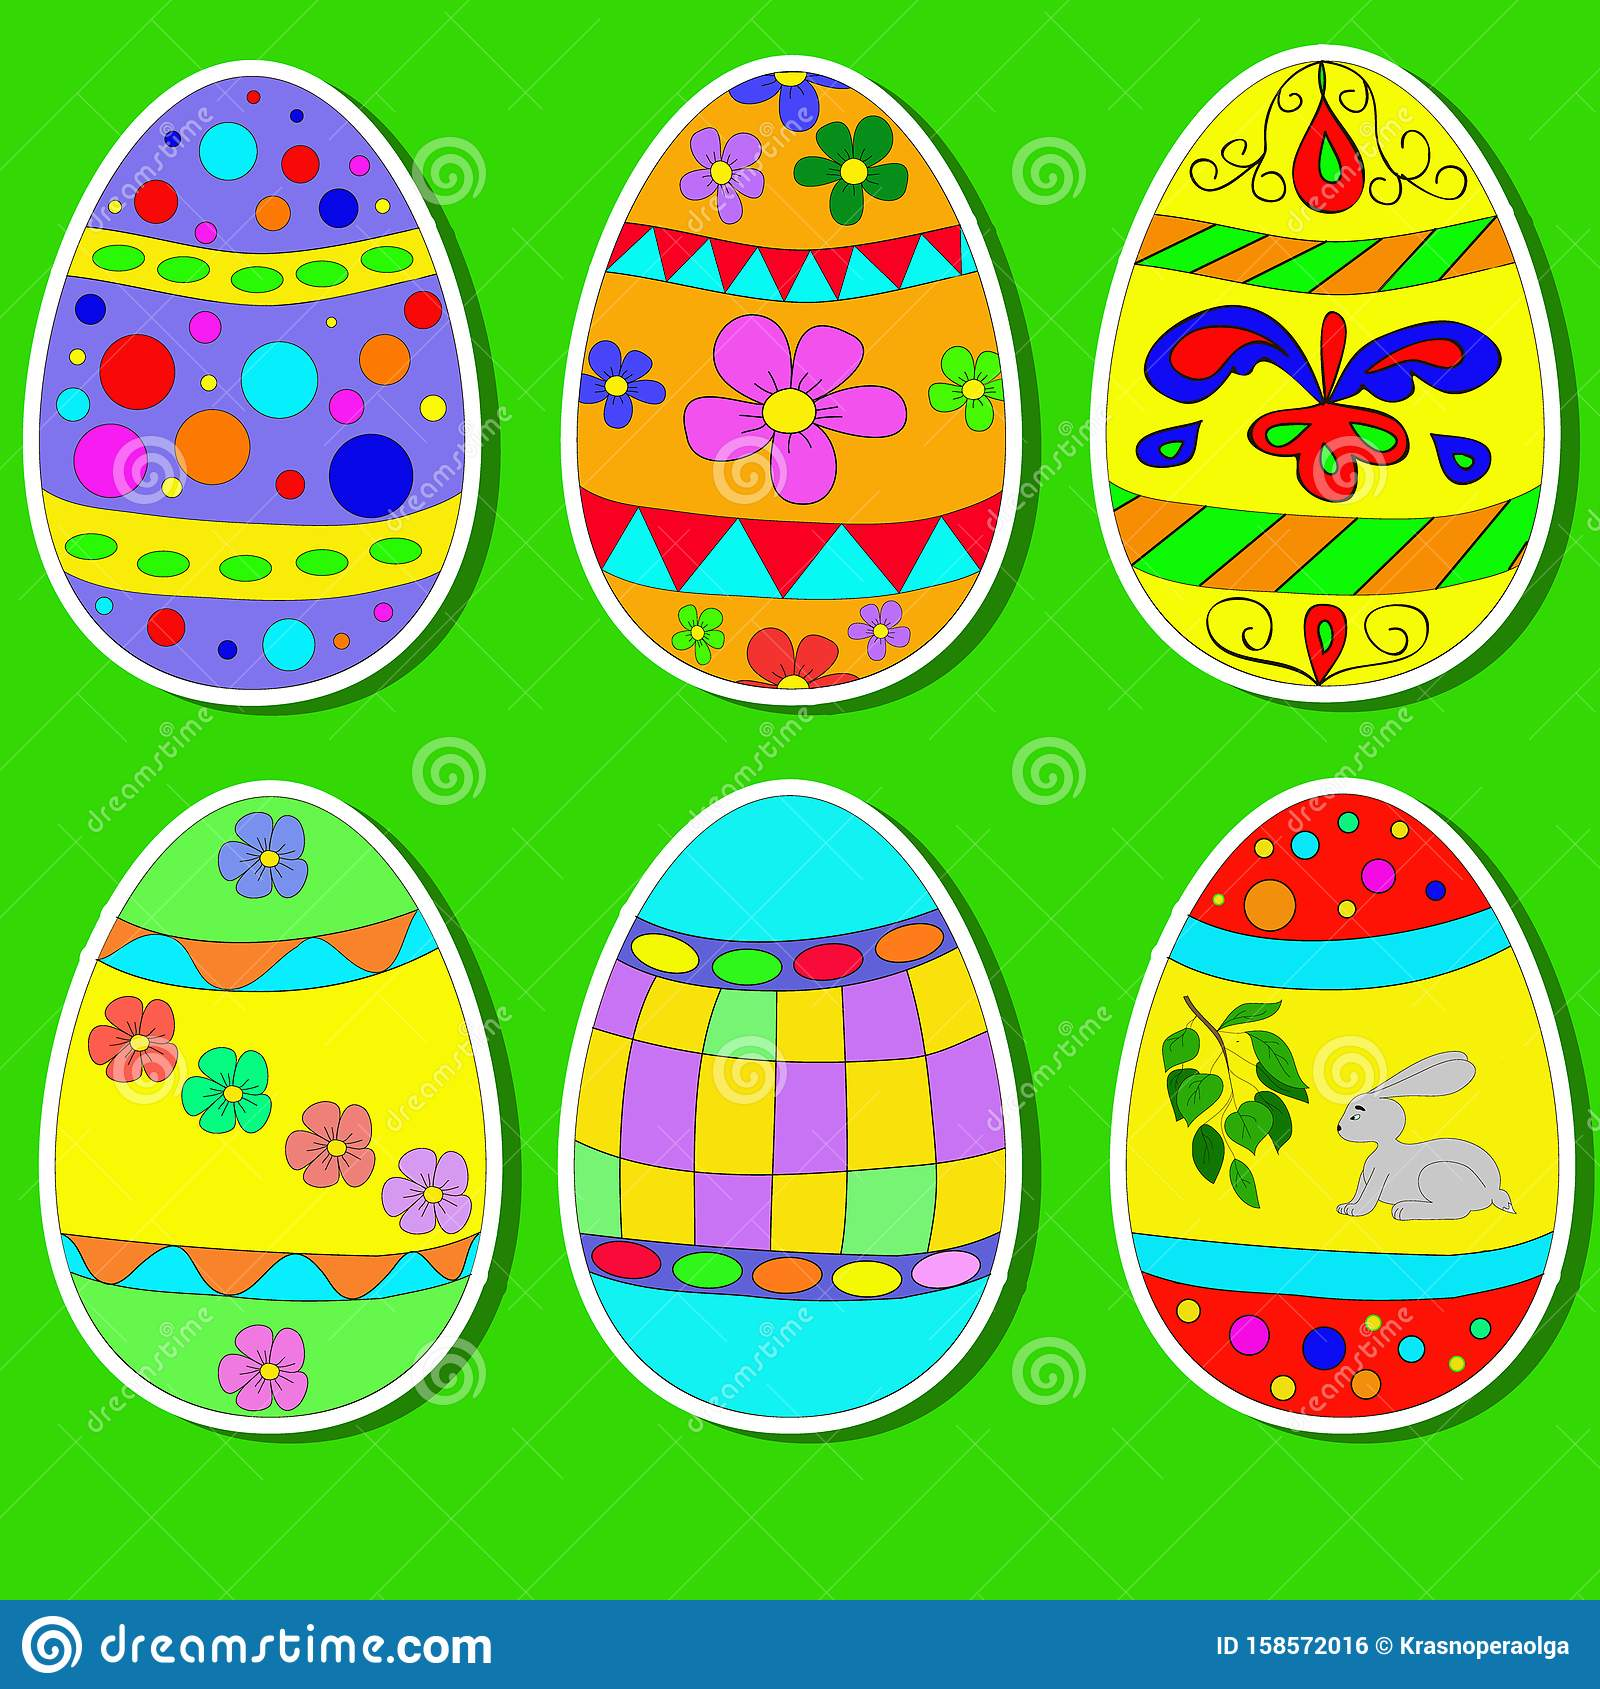 fried egg clipart - Google Search | Fried egg, Food clips, Chicken eggs